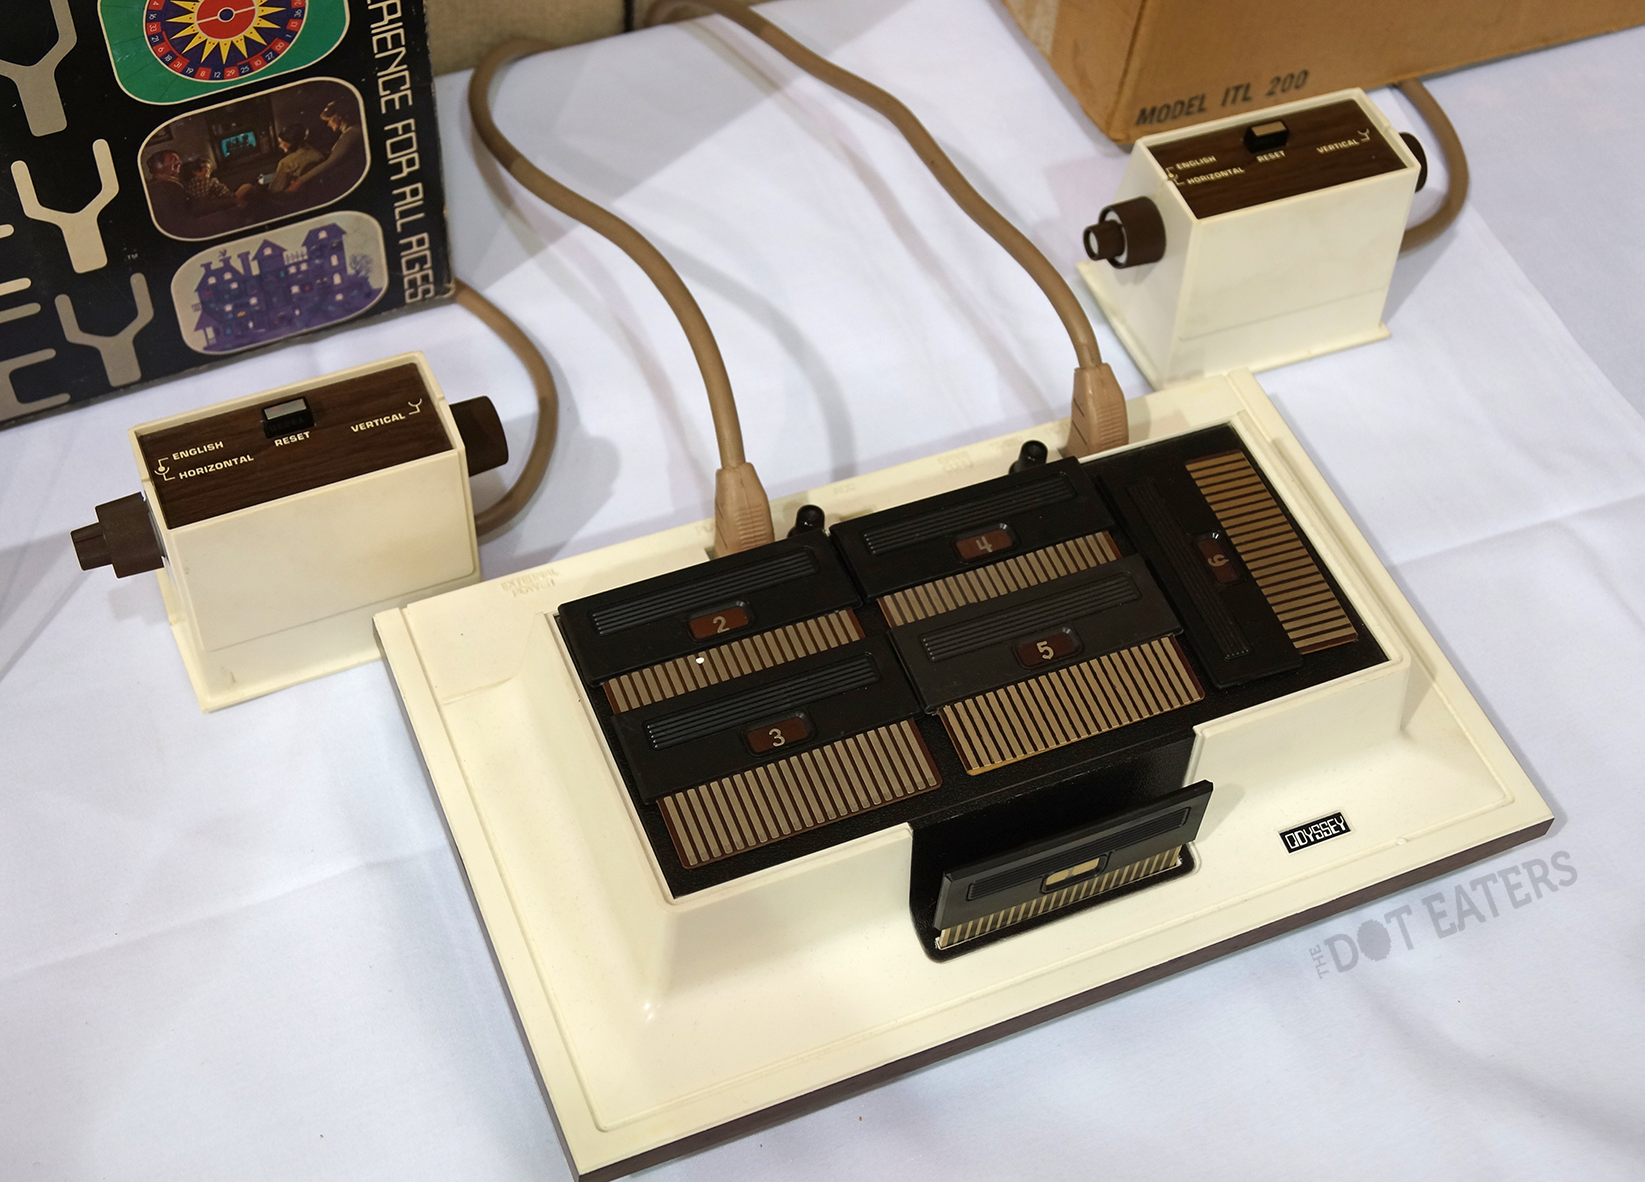 The Odyssey, a home video game system by Magnavox 1972